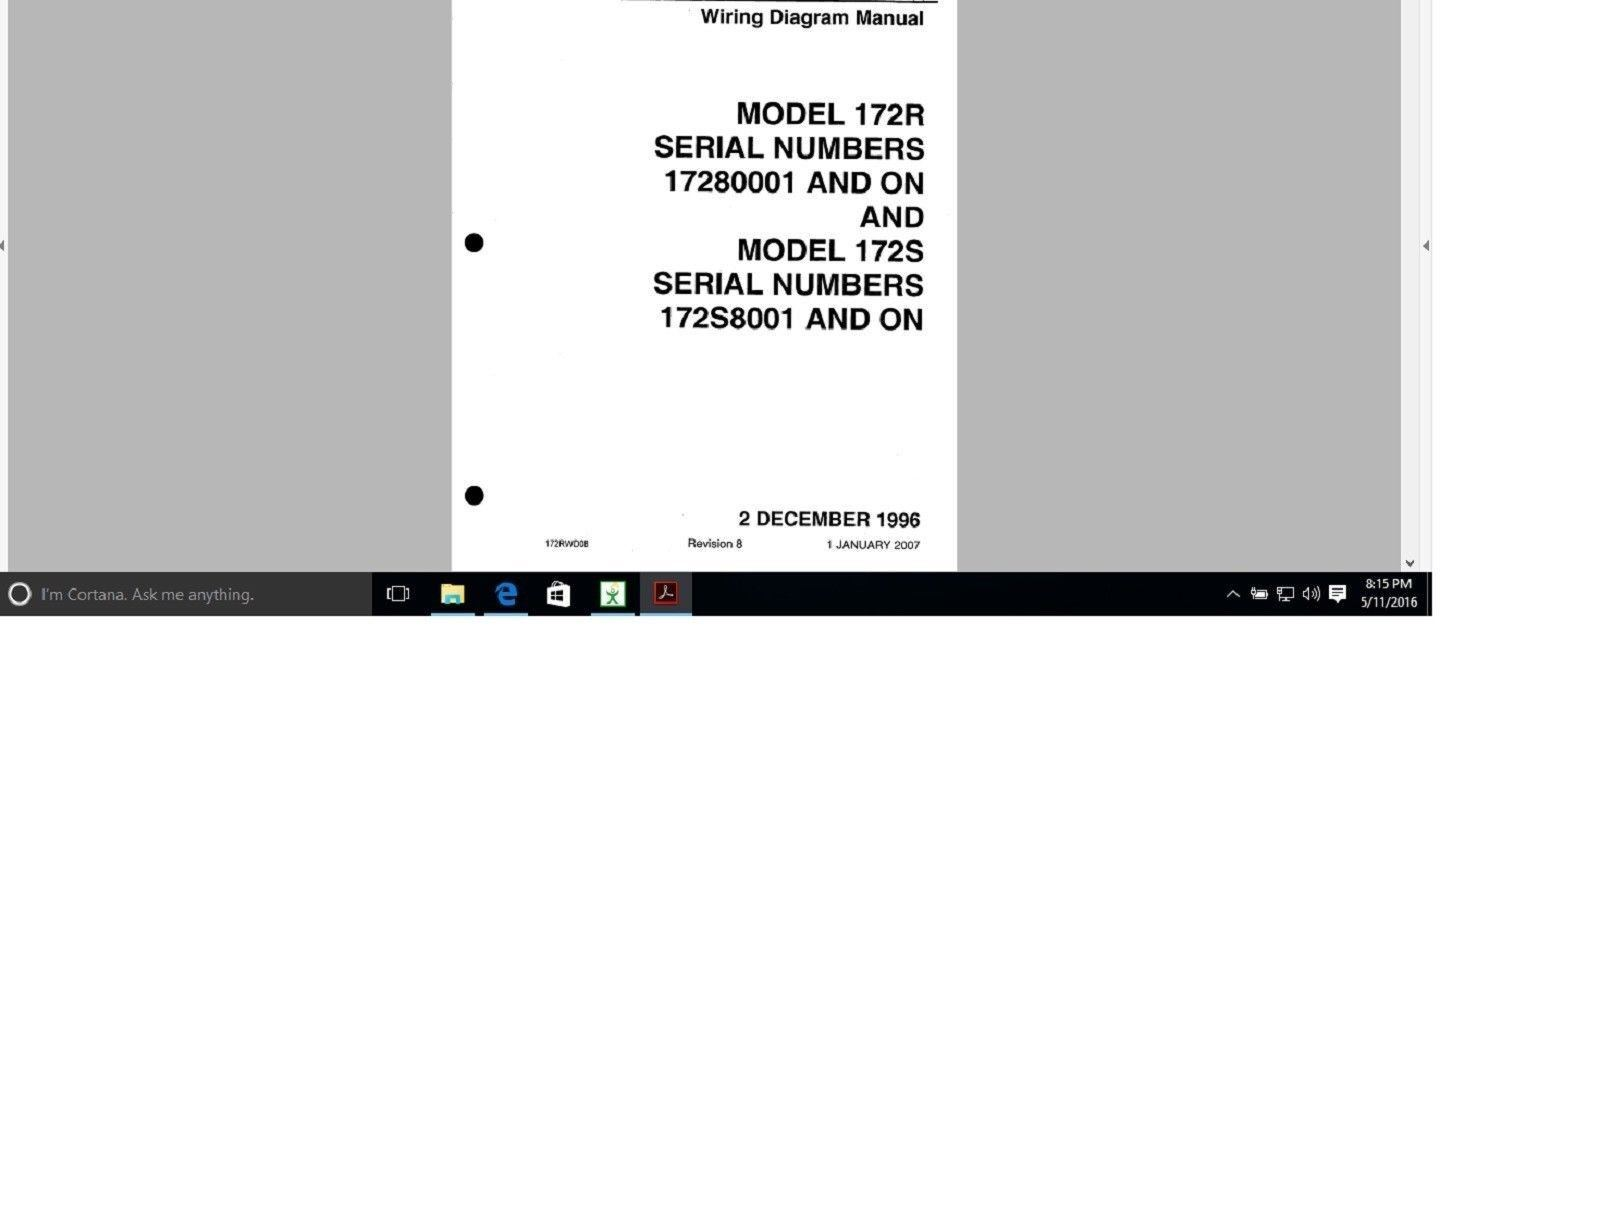 1967 Cessna 150 Wiring Diagram Schematic Diagrams Aircraft 172 Electrical Manual 172r 172s 172n